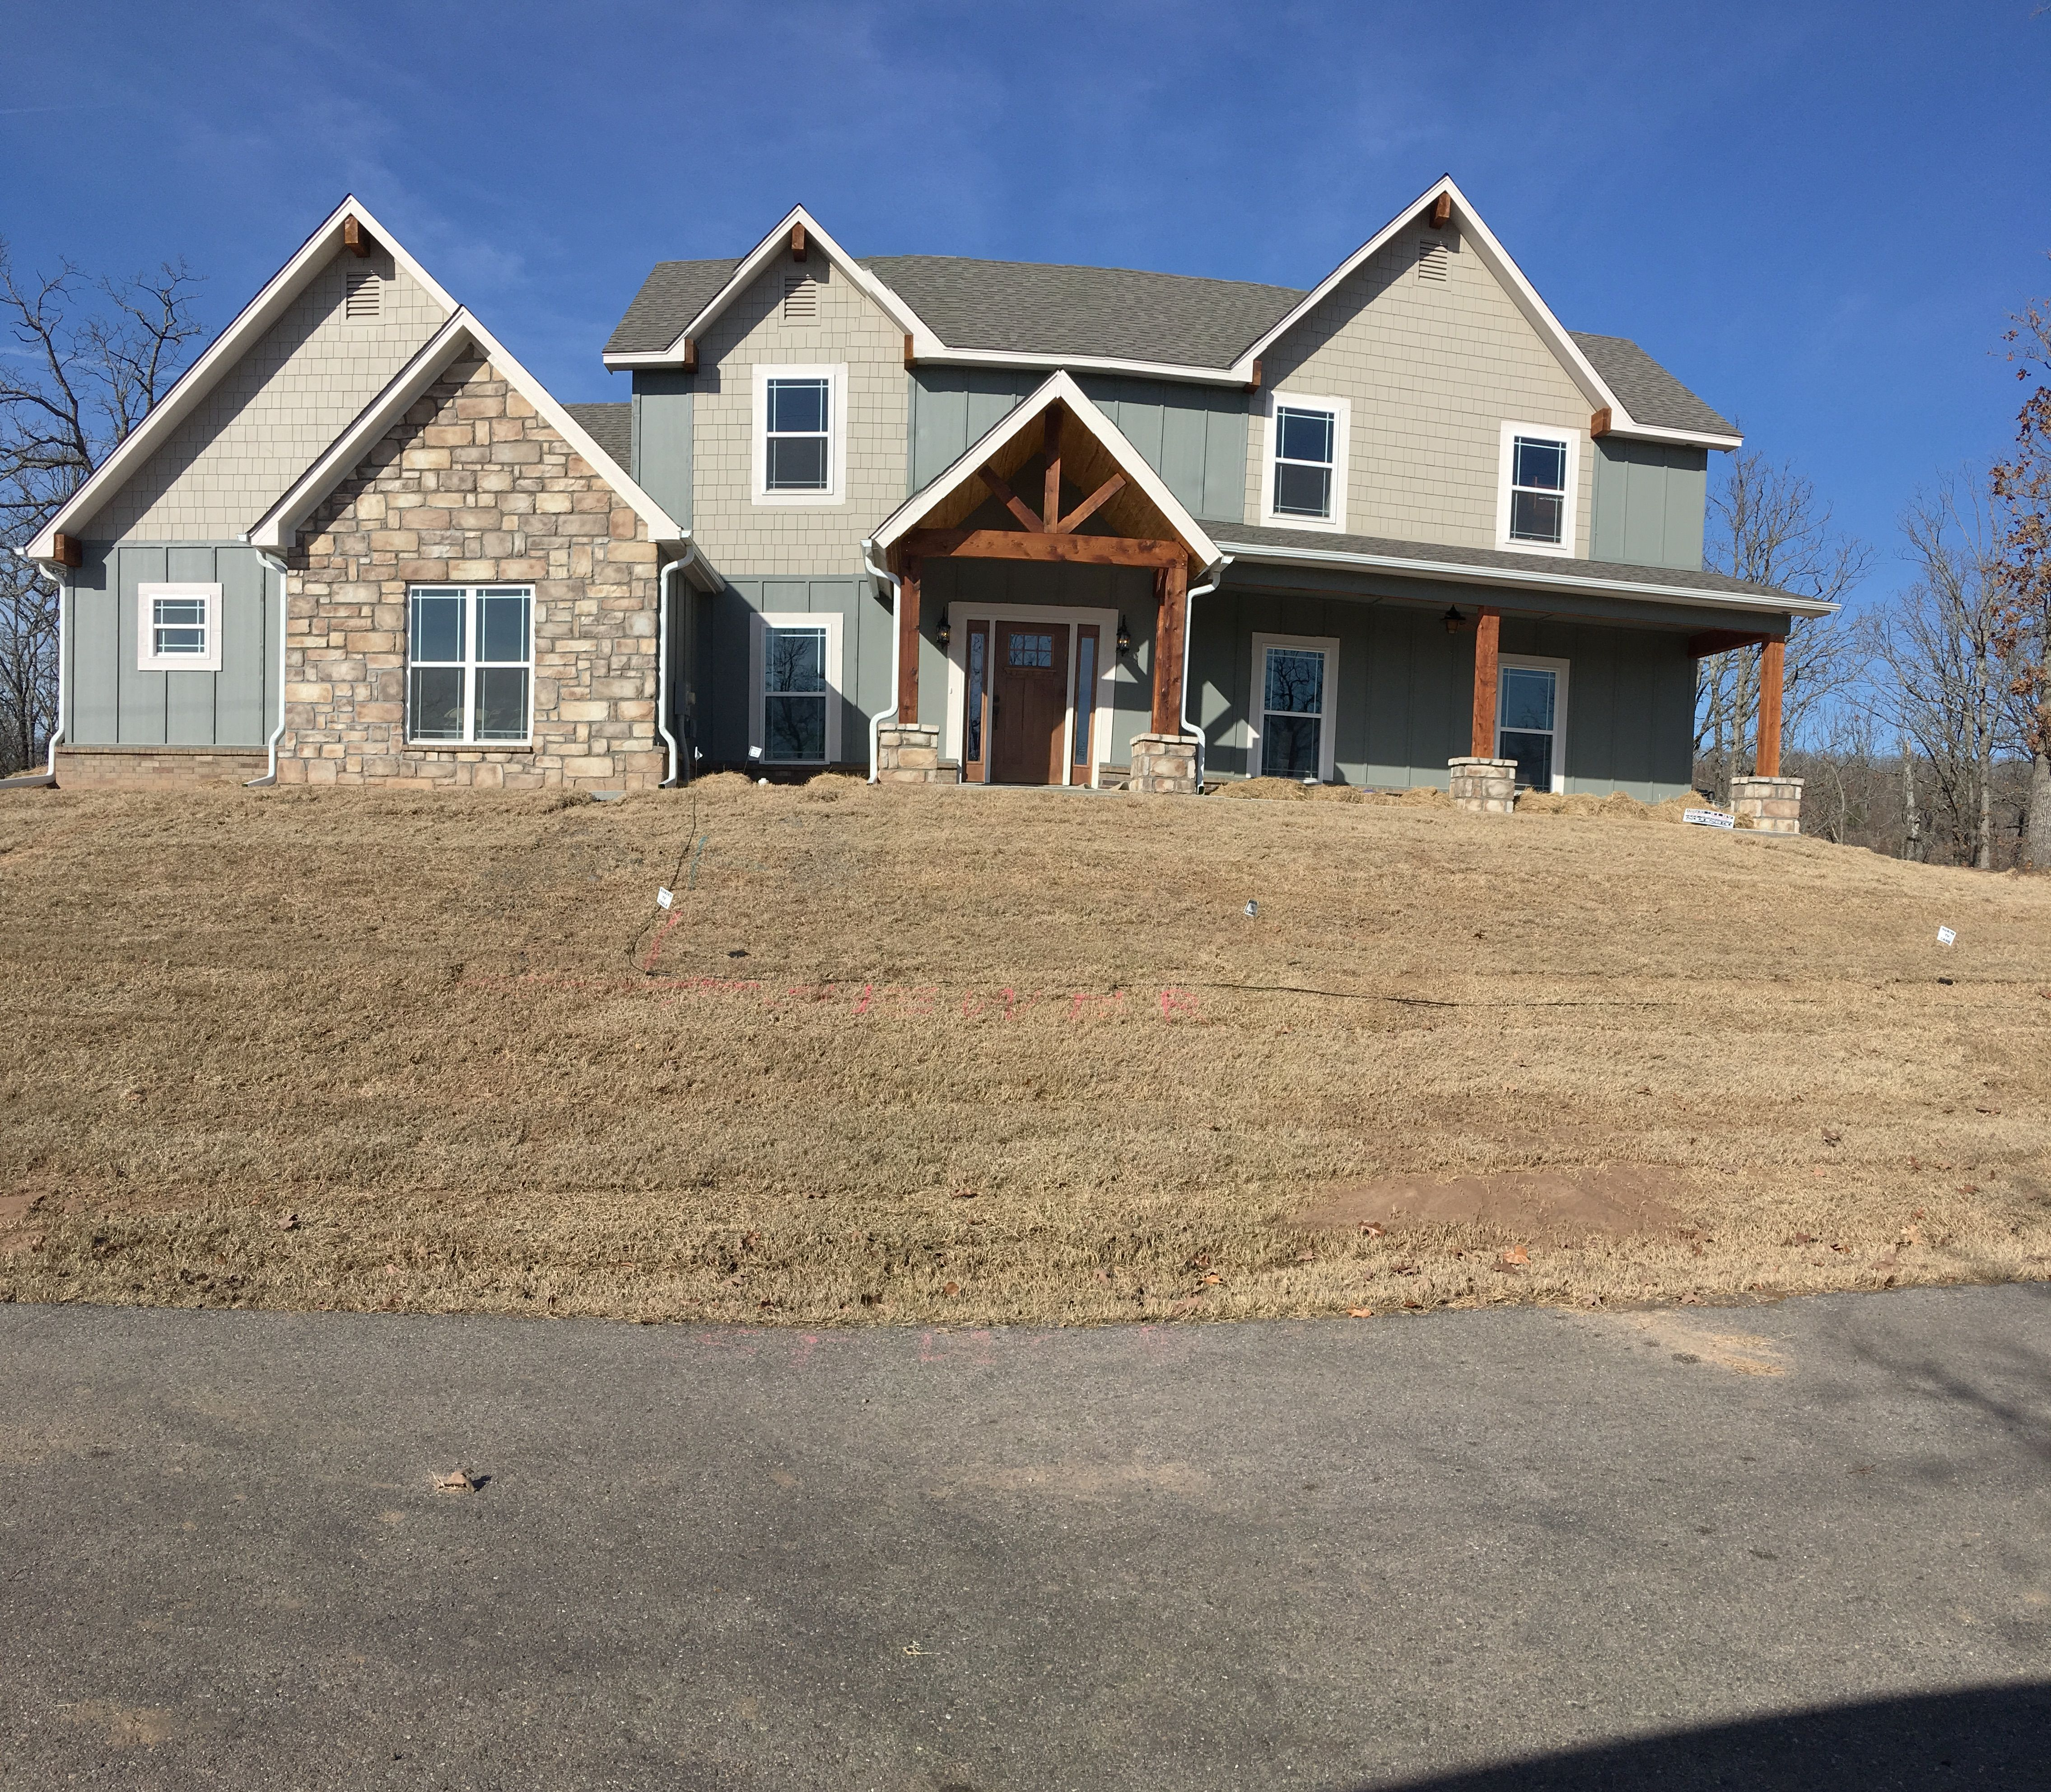 Exterior Two Story Home With Hardi Backer Siding Stone Accents And Much More House Styles Building A House Custom Homes